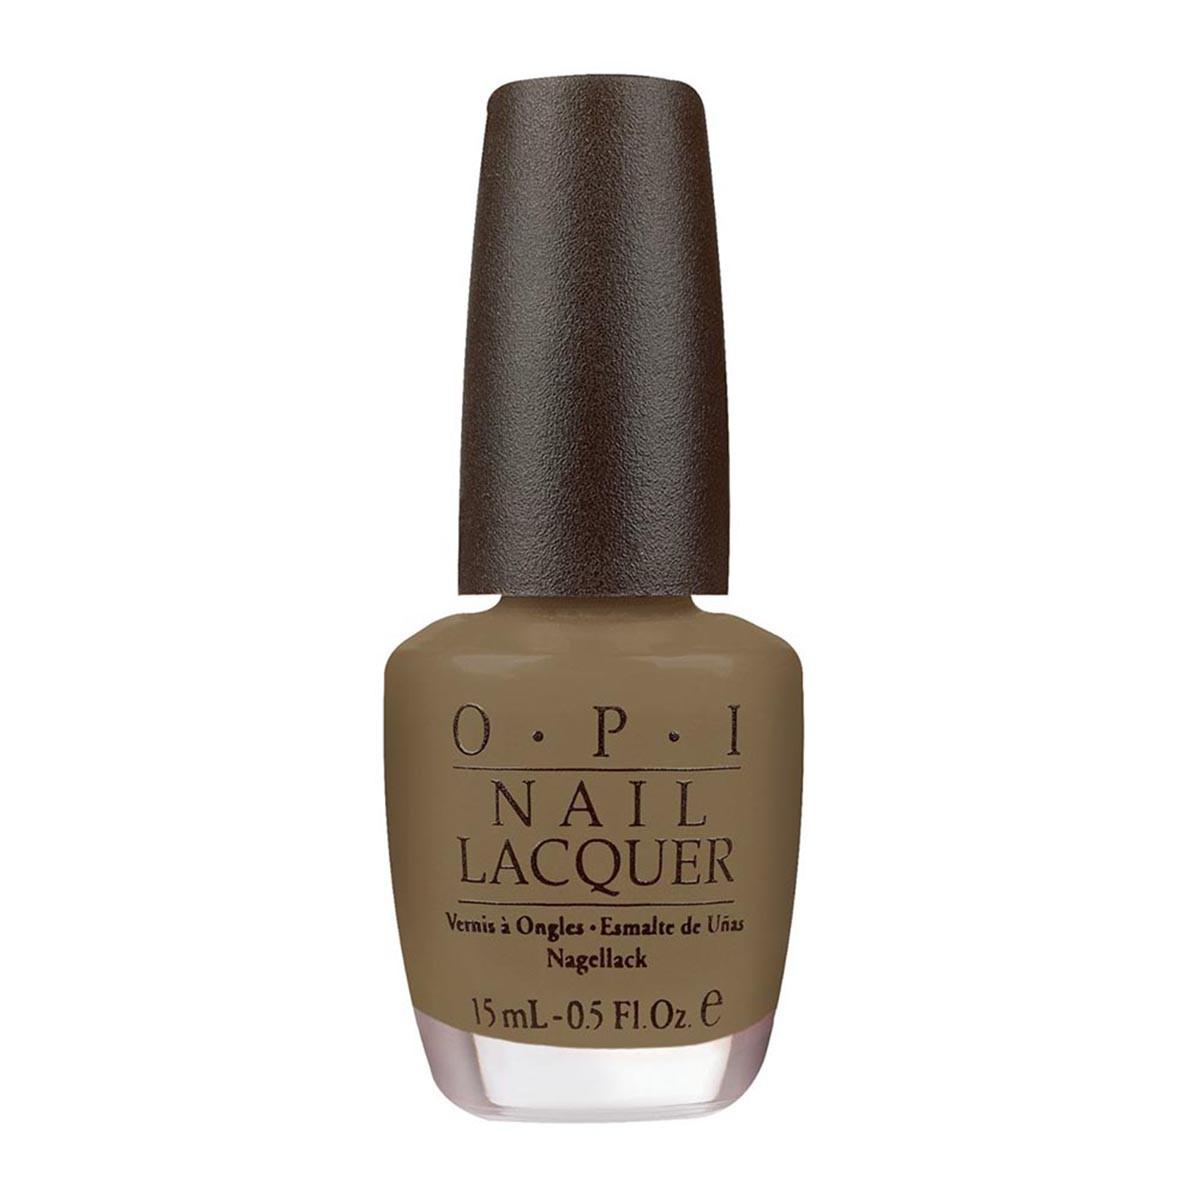 Opi Nail Lacquer Nlf15 You Don T Know Jacques!